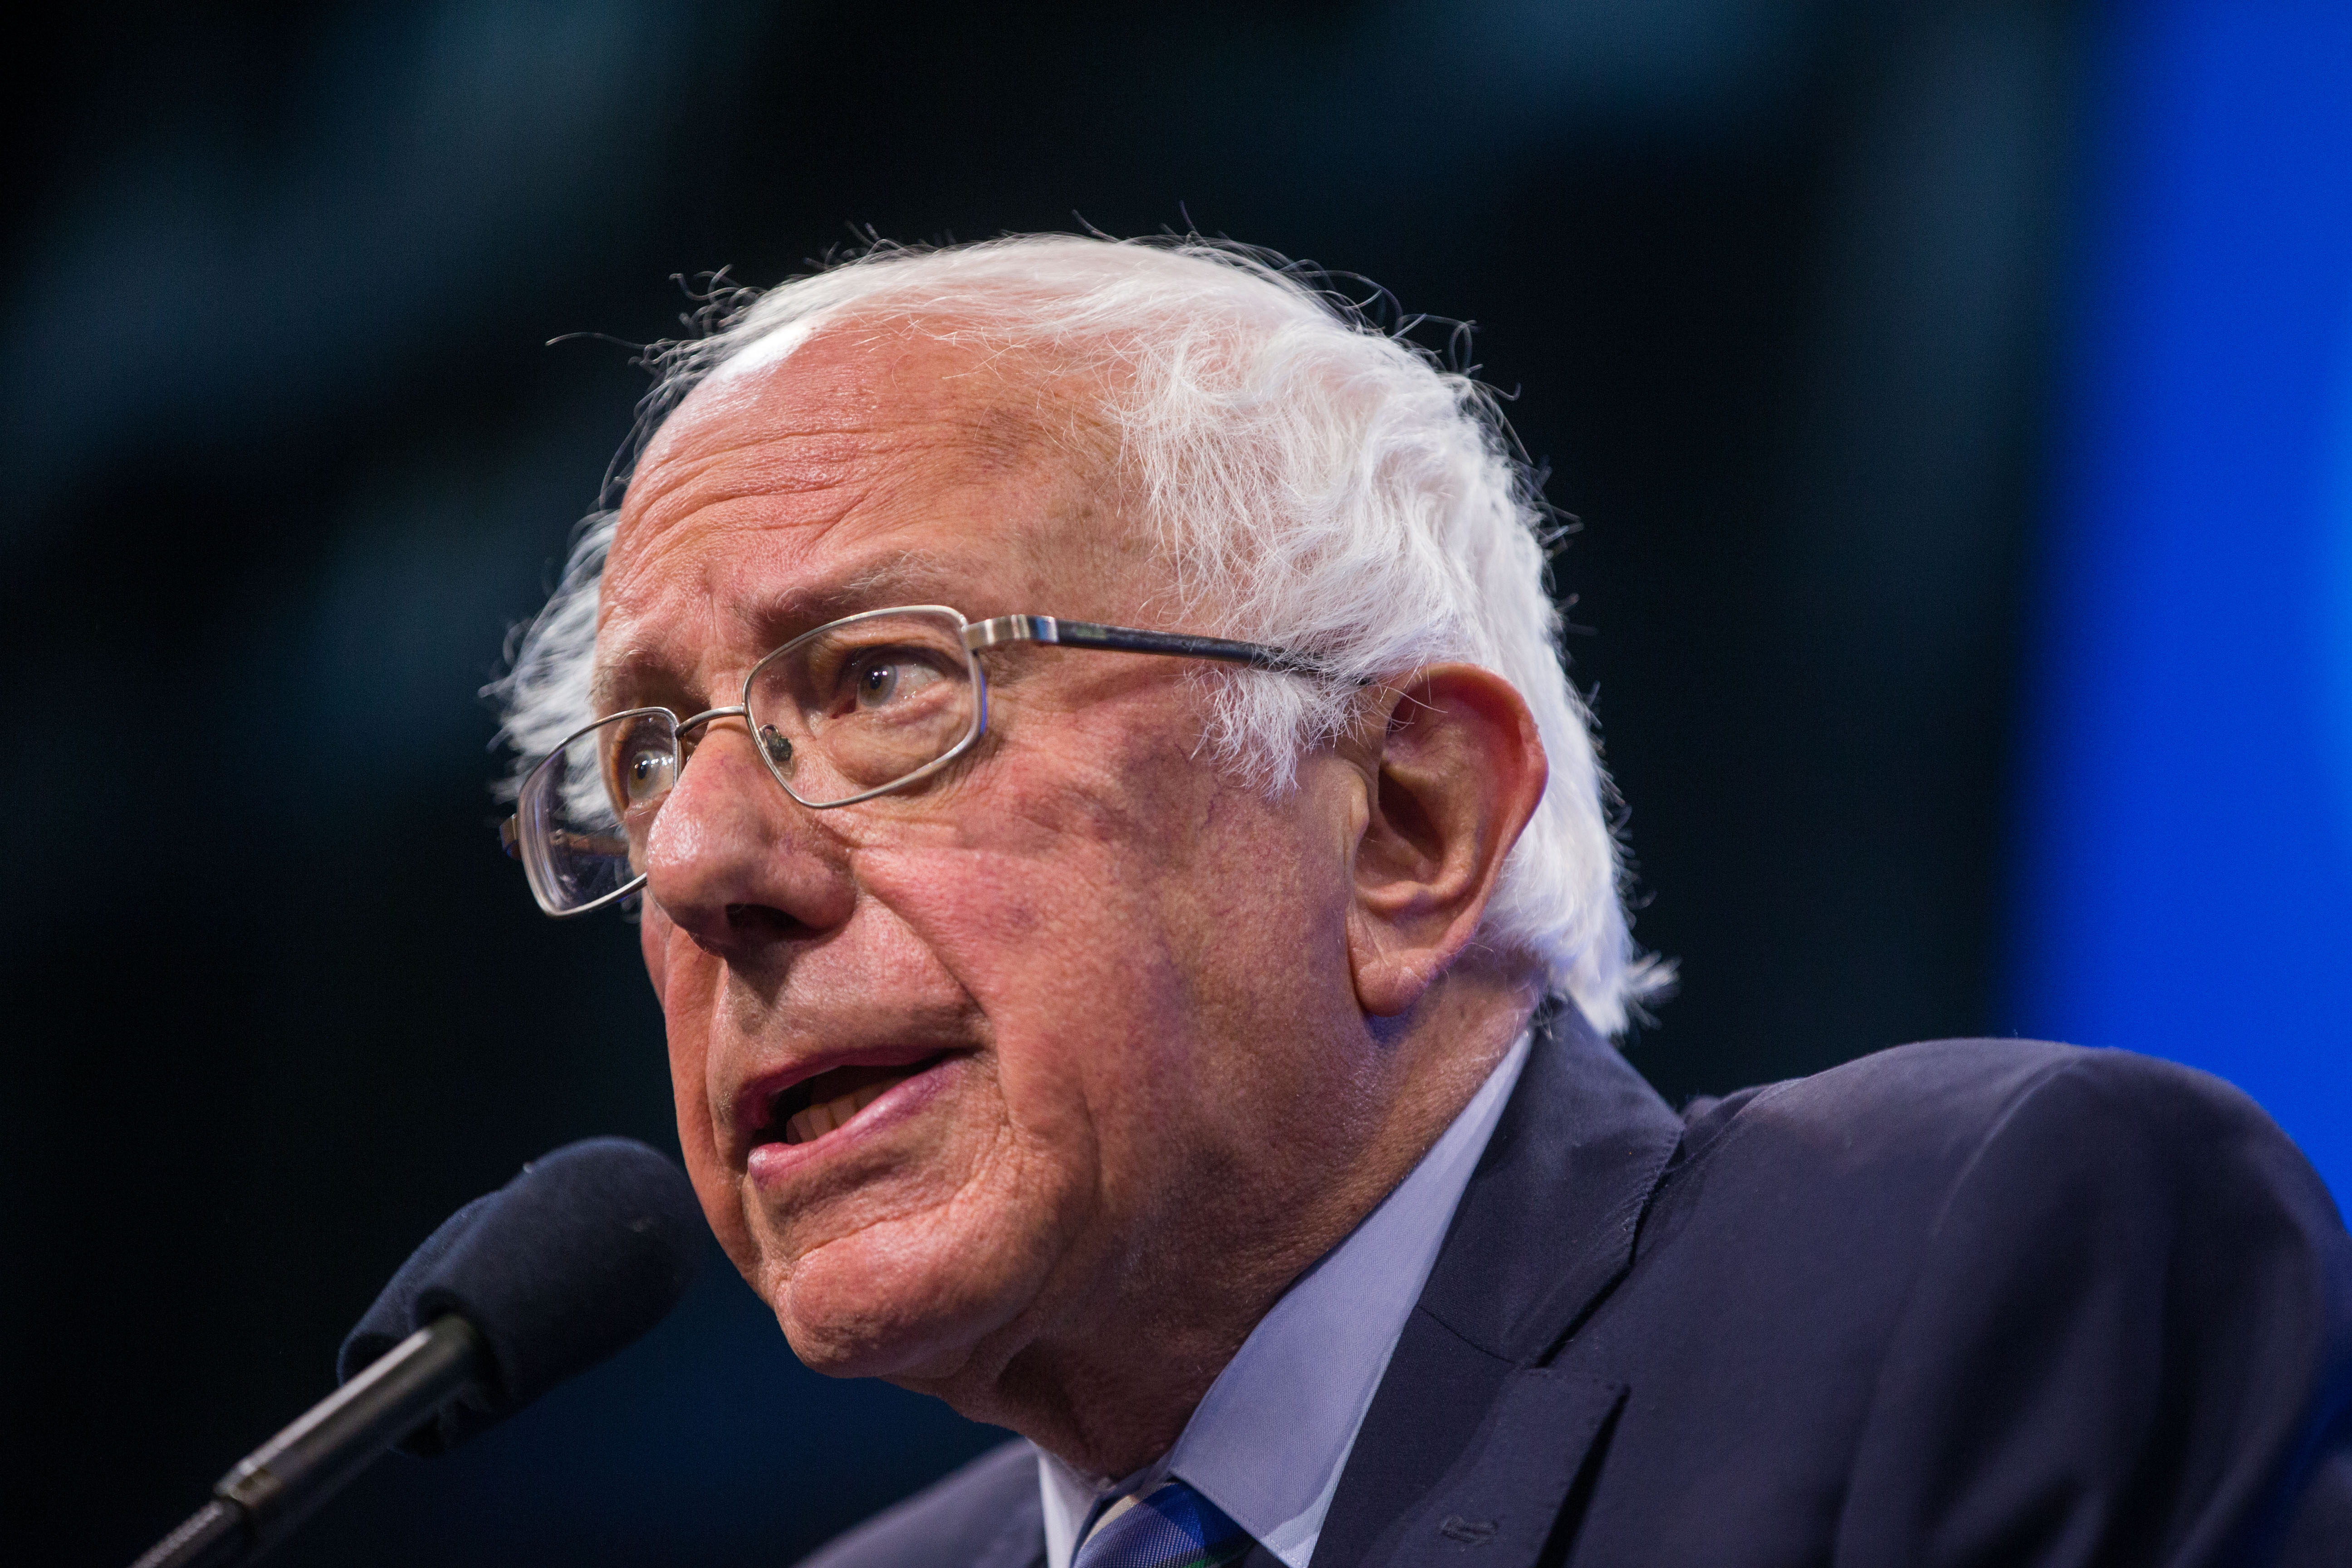 Bernie Sanders says Medicare For All will help Black Americans take better care of themselves. That includes in the event of a health epidemic like the coronavirus aka COVID-19.